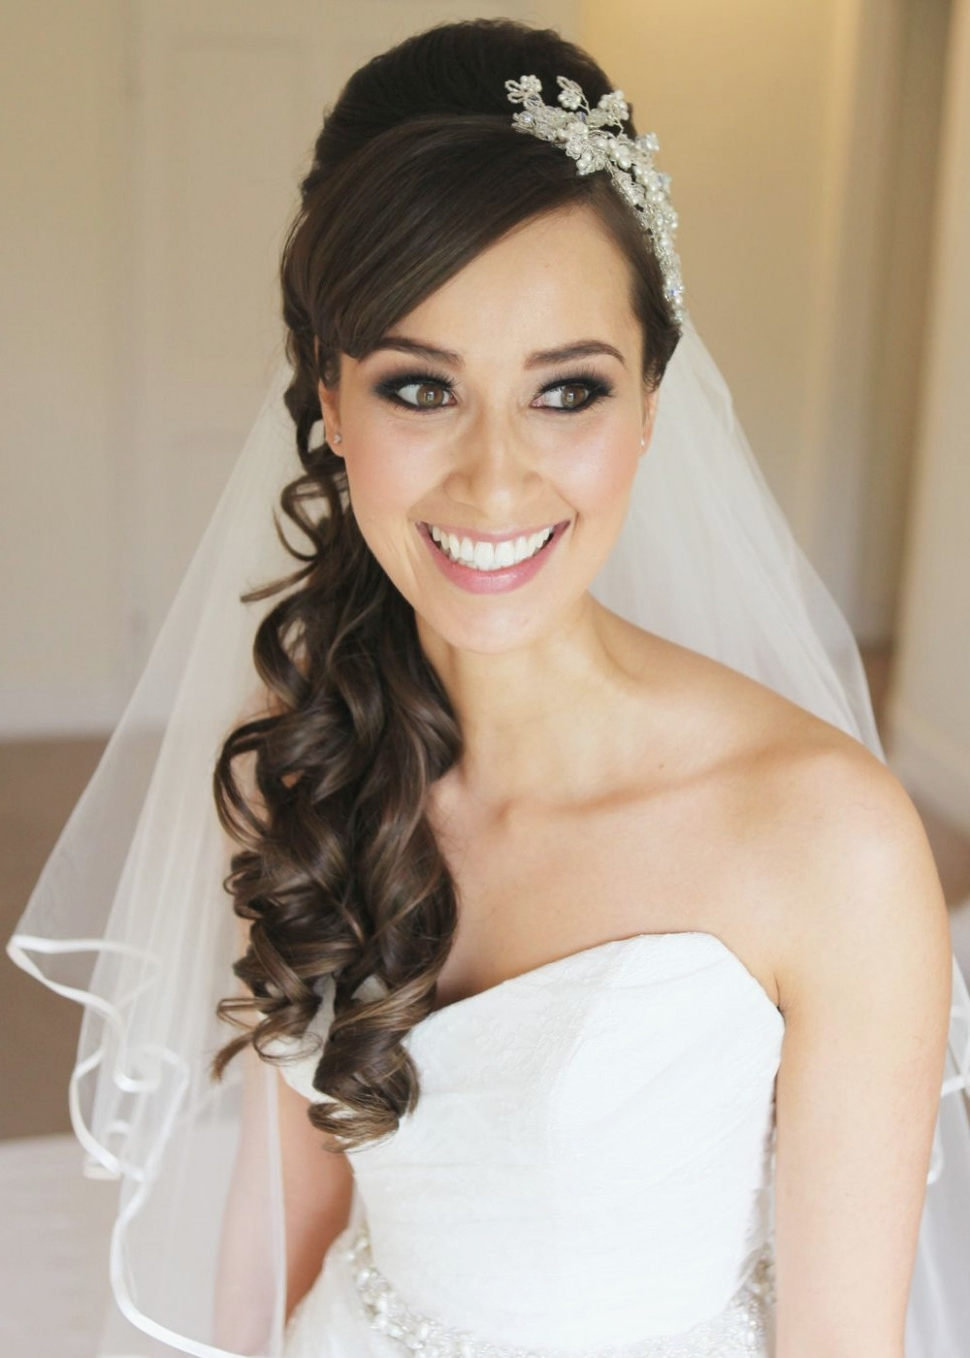 13 Unexpected Ways Wedding Hair With Veil And Tiara Can With Regard To Recent Wedding Hairstyles Down With Tiara (View 5 of 15)